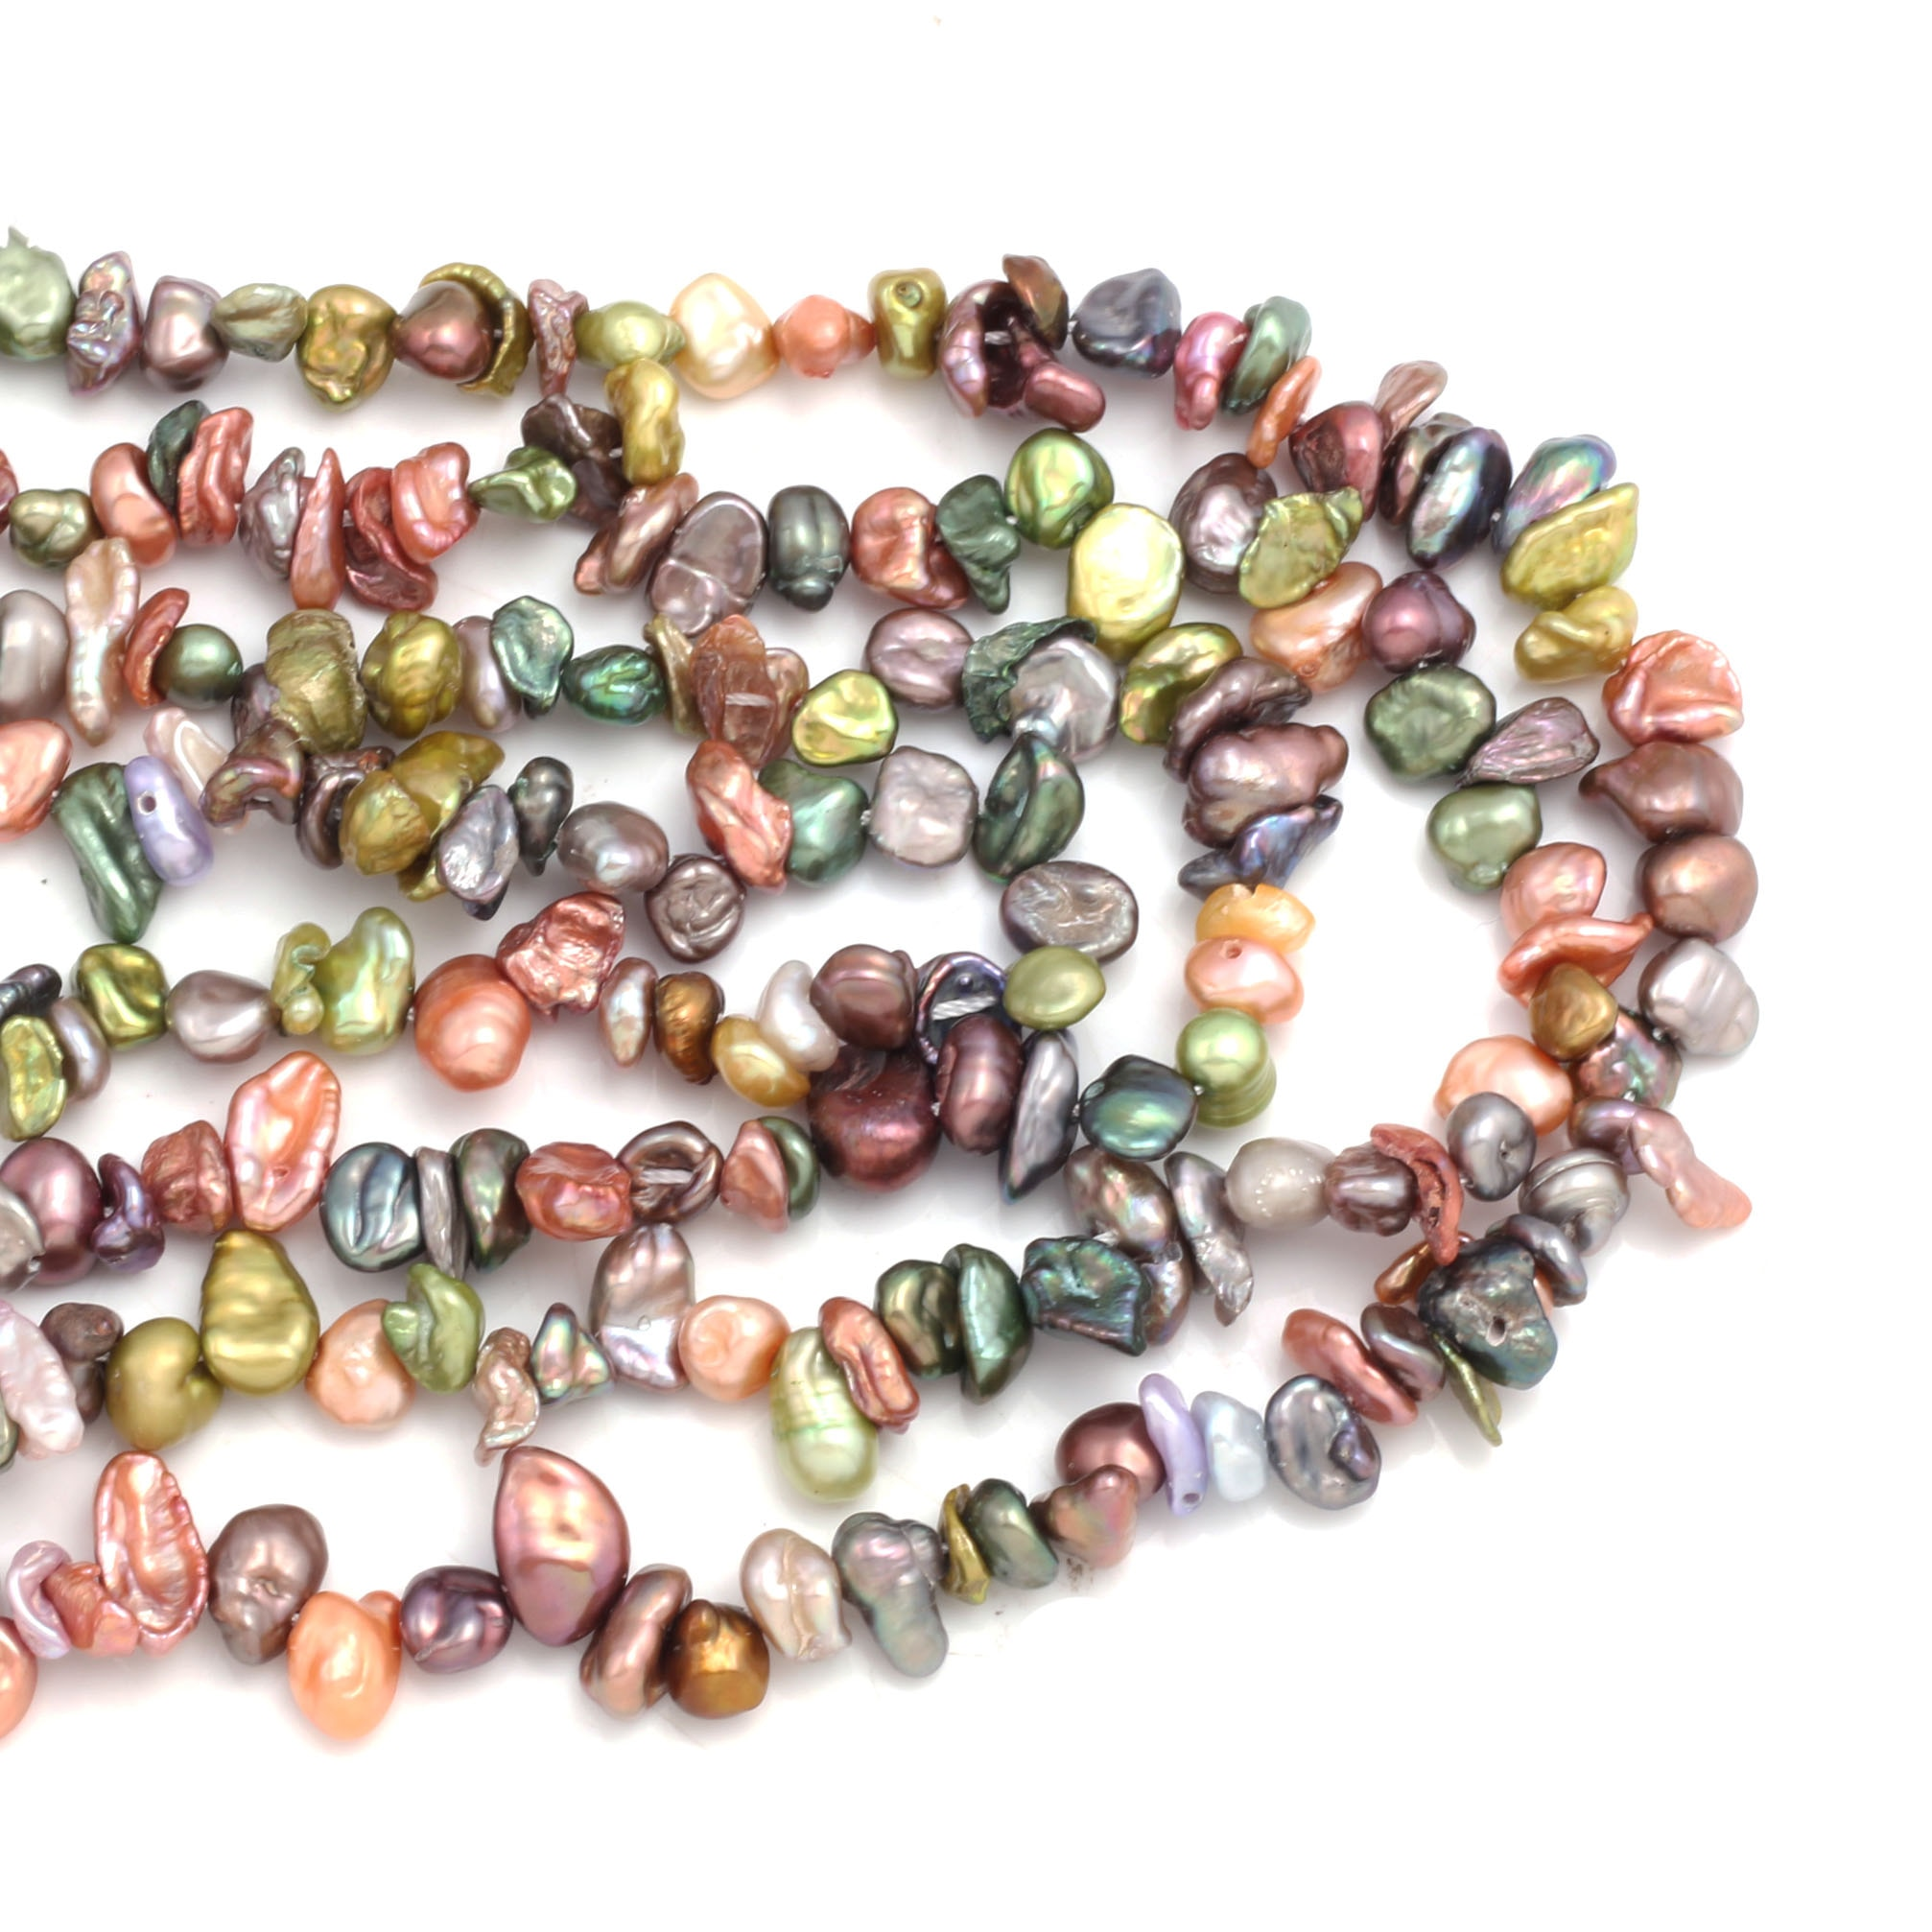 6-8mm Natural Reborn Keshi Colorful Freshwater Pearl Beads Irregular Real Pearls for DIY Charm Necklace Bracelet Jewelry Making  - buy with discount